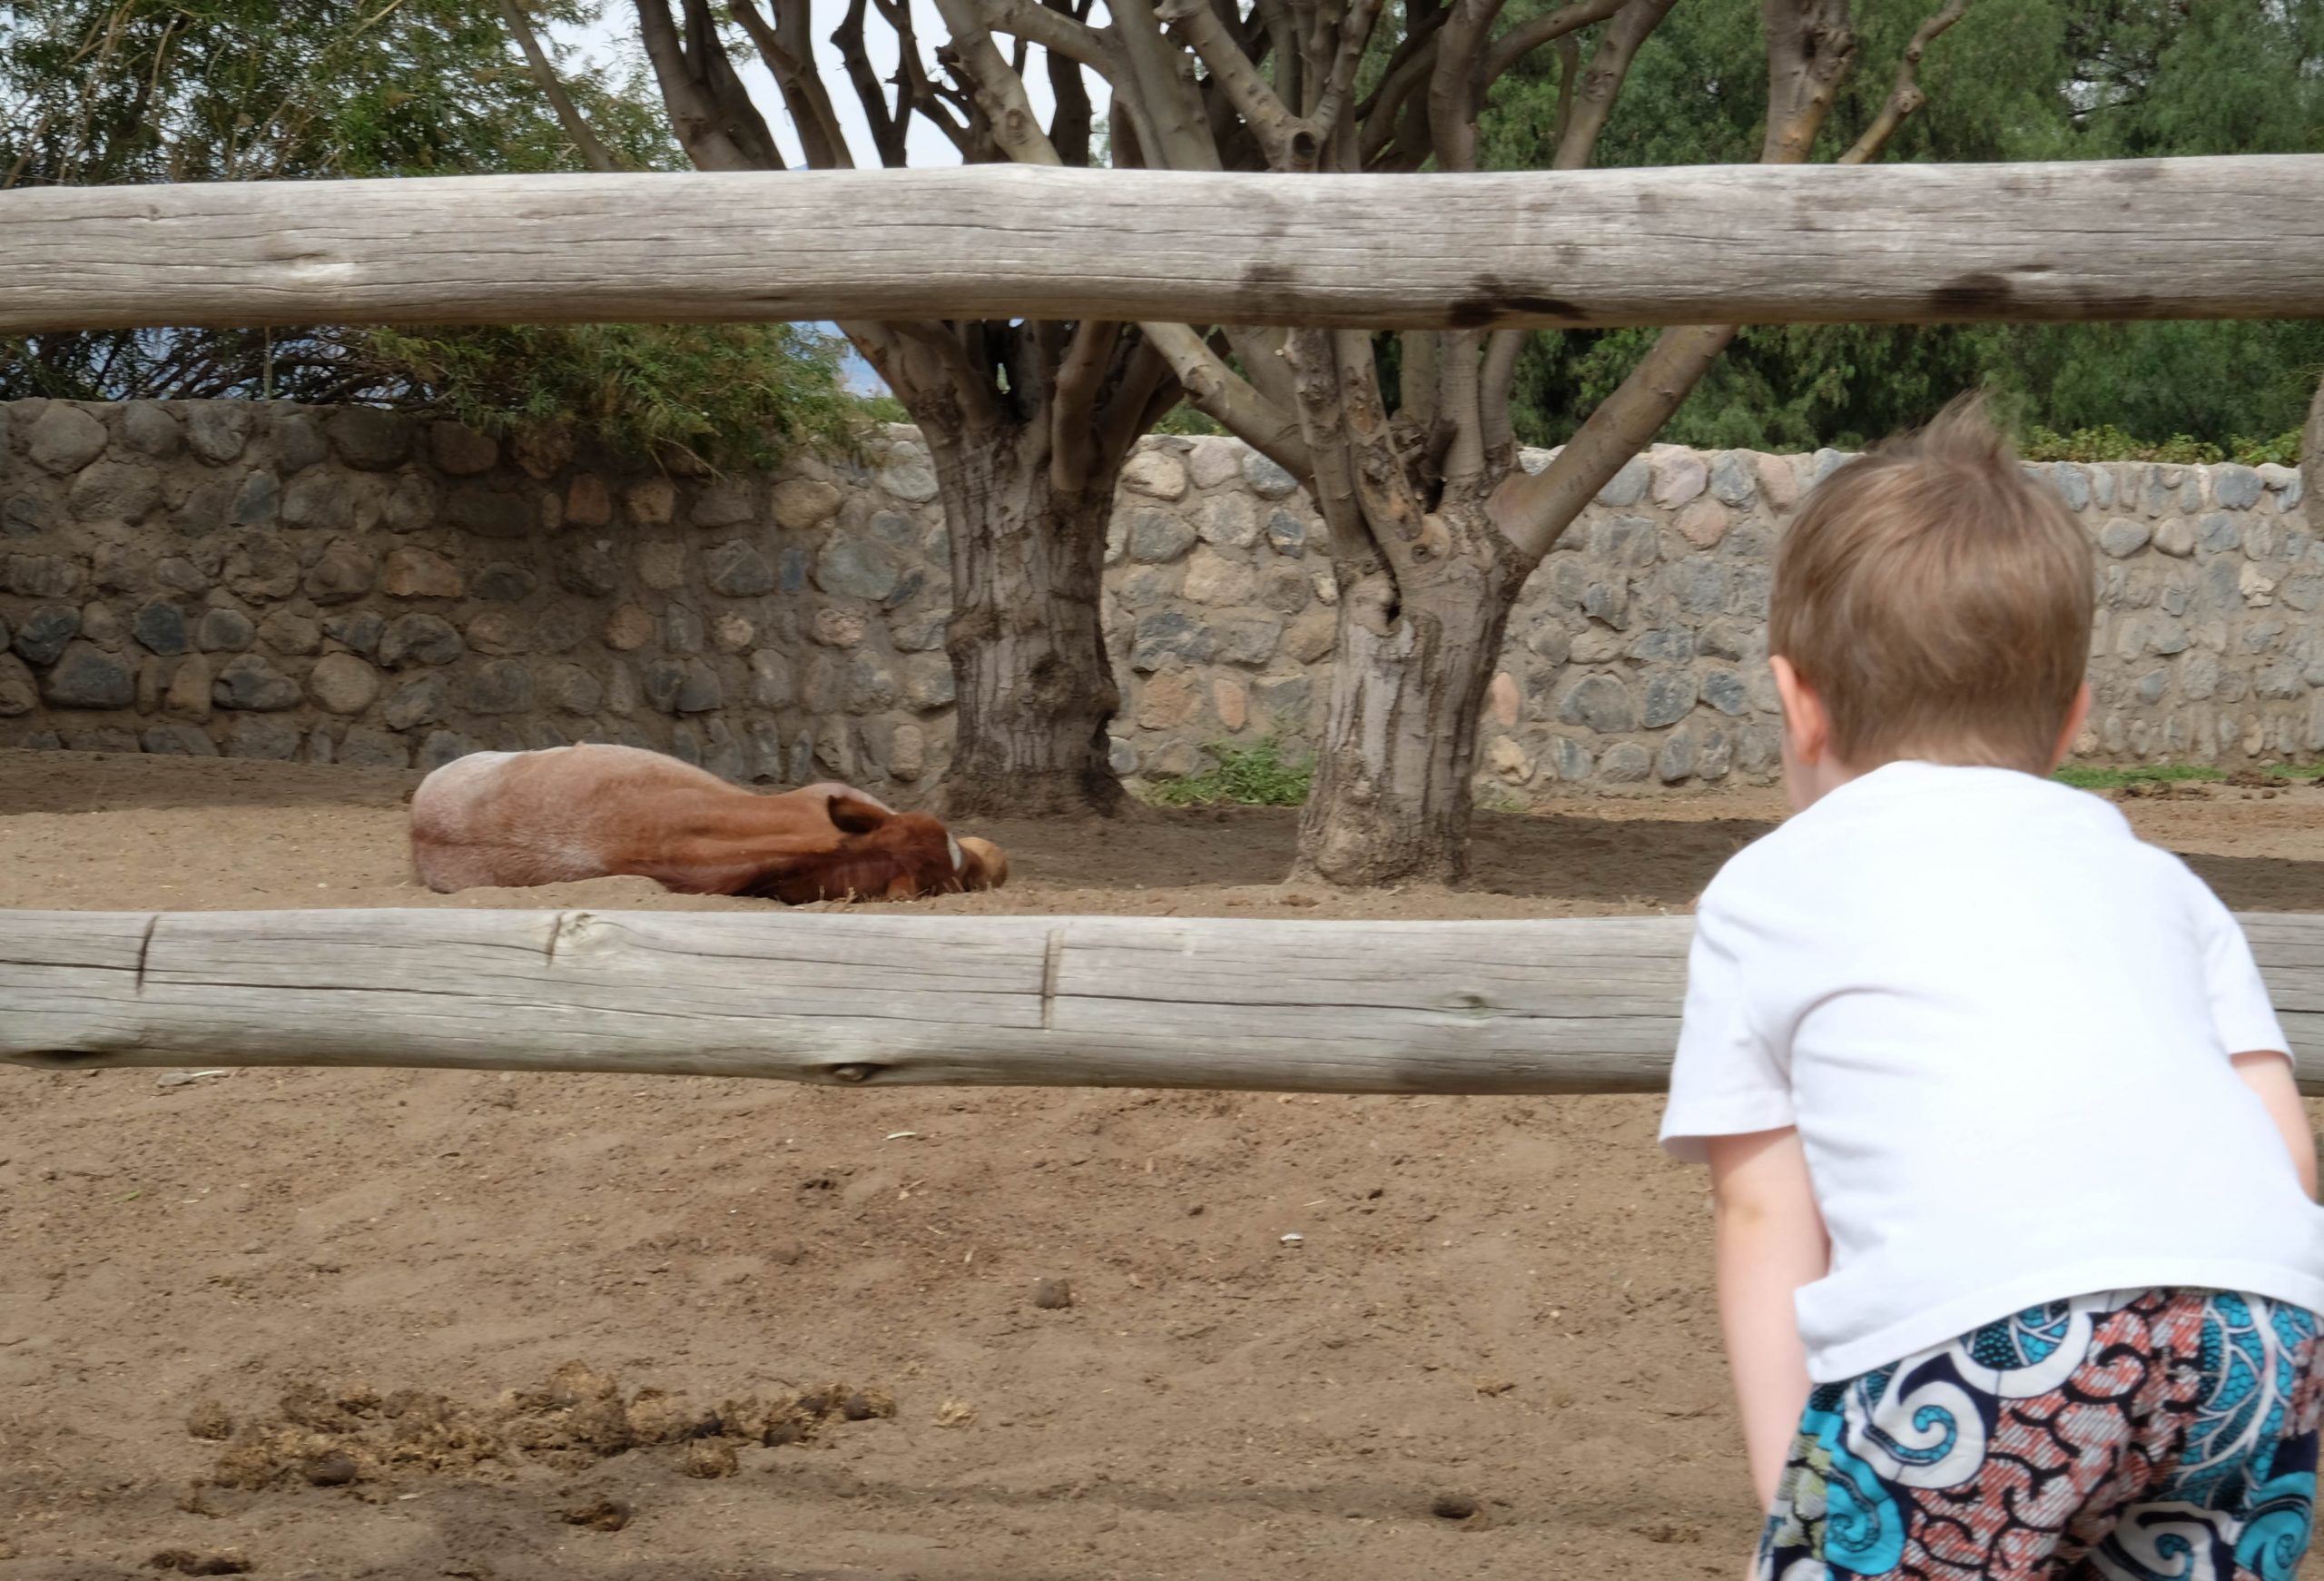 boy looking at lying horse in paddock